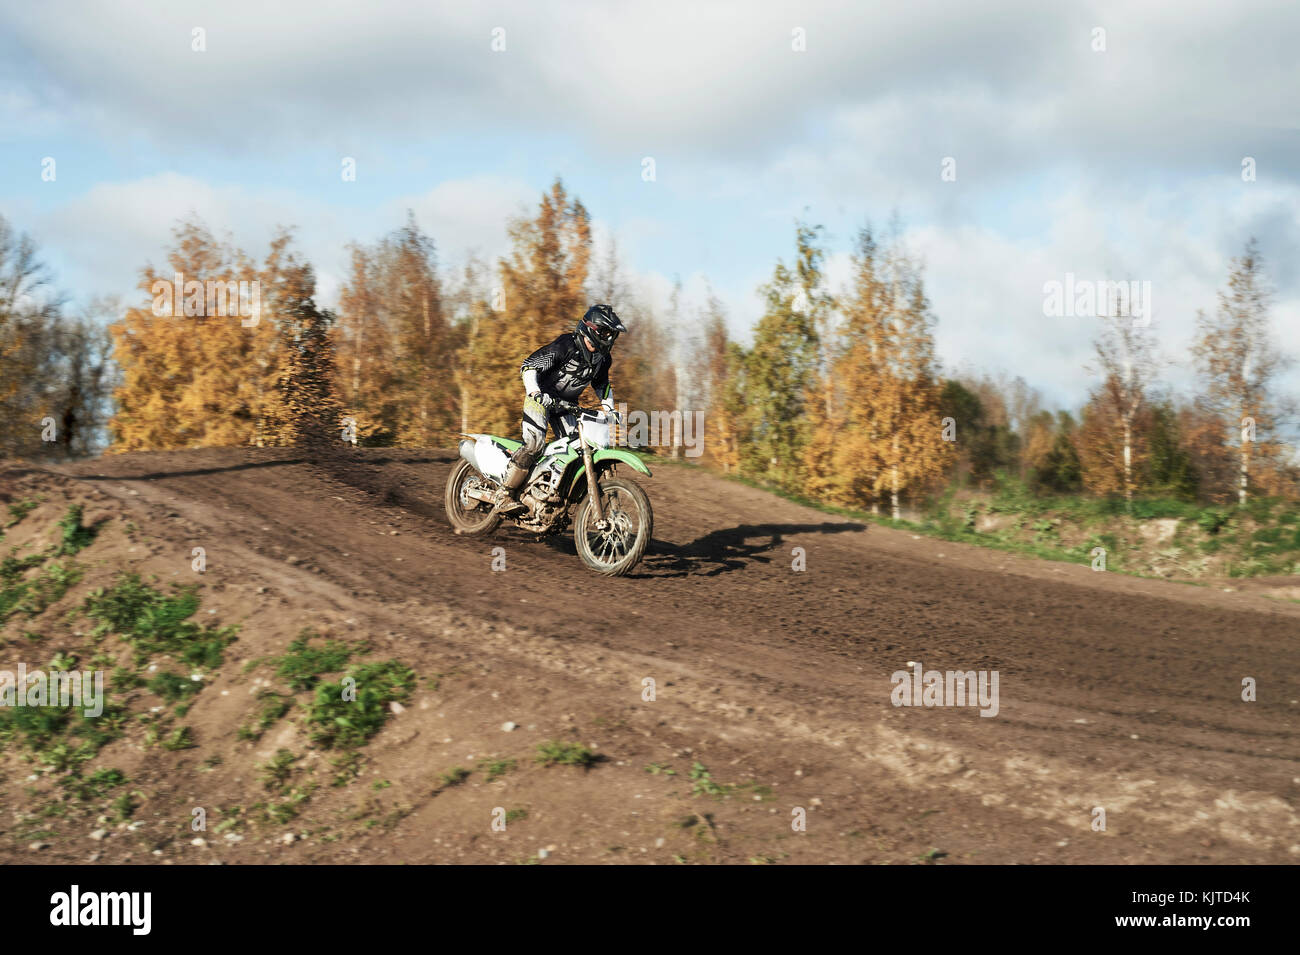 Motocross enduro rider in action accelerating the motorbike after the corner on dirt race track. Extreme off-road Stock Photo